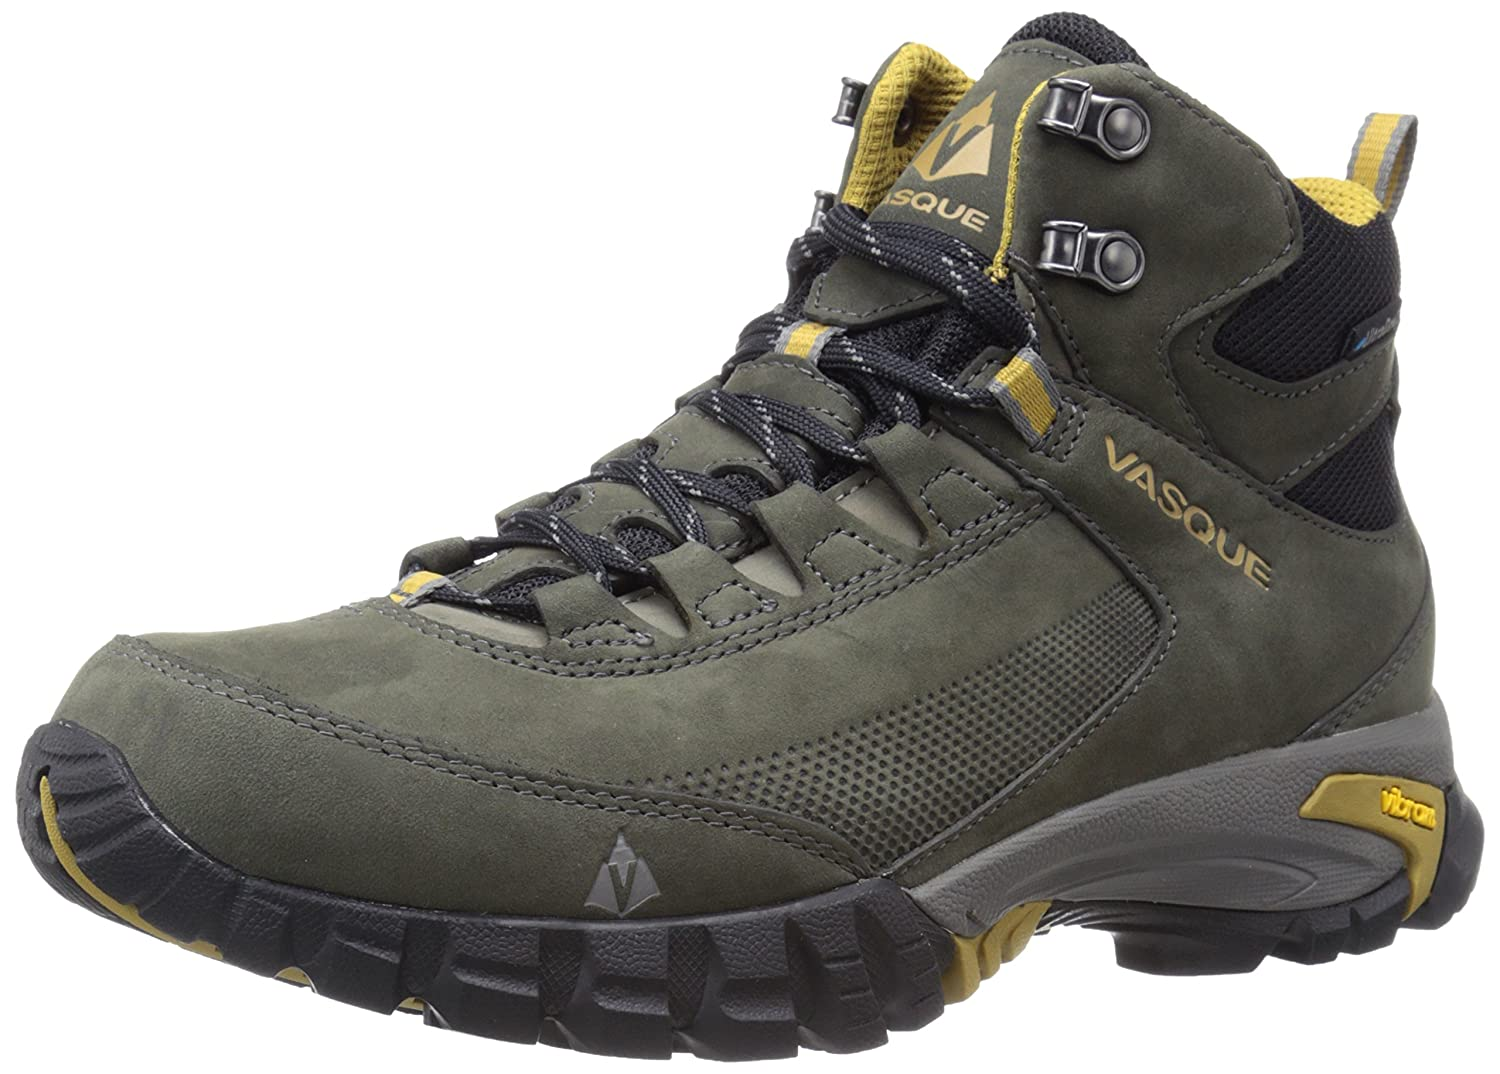 8fd65dbddfd Vasque Men's Talus Trek Ultradry Hiking Boot